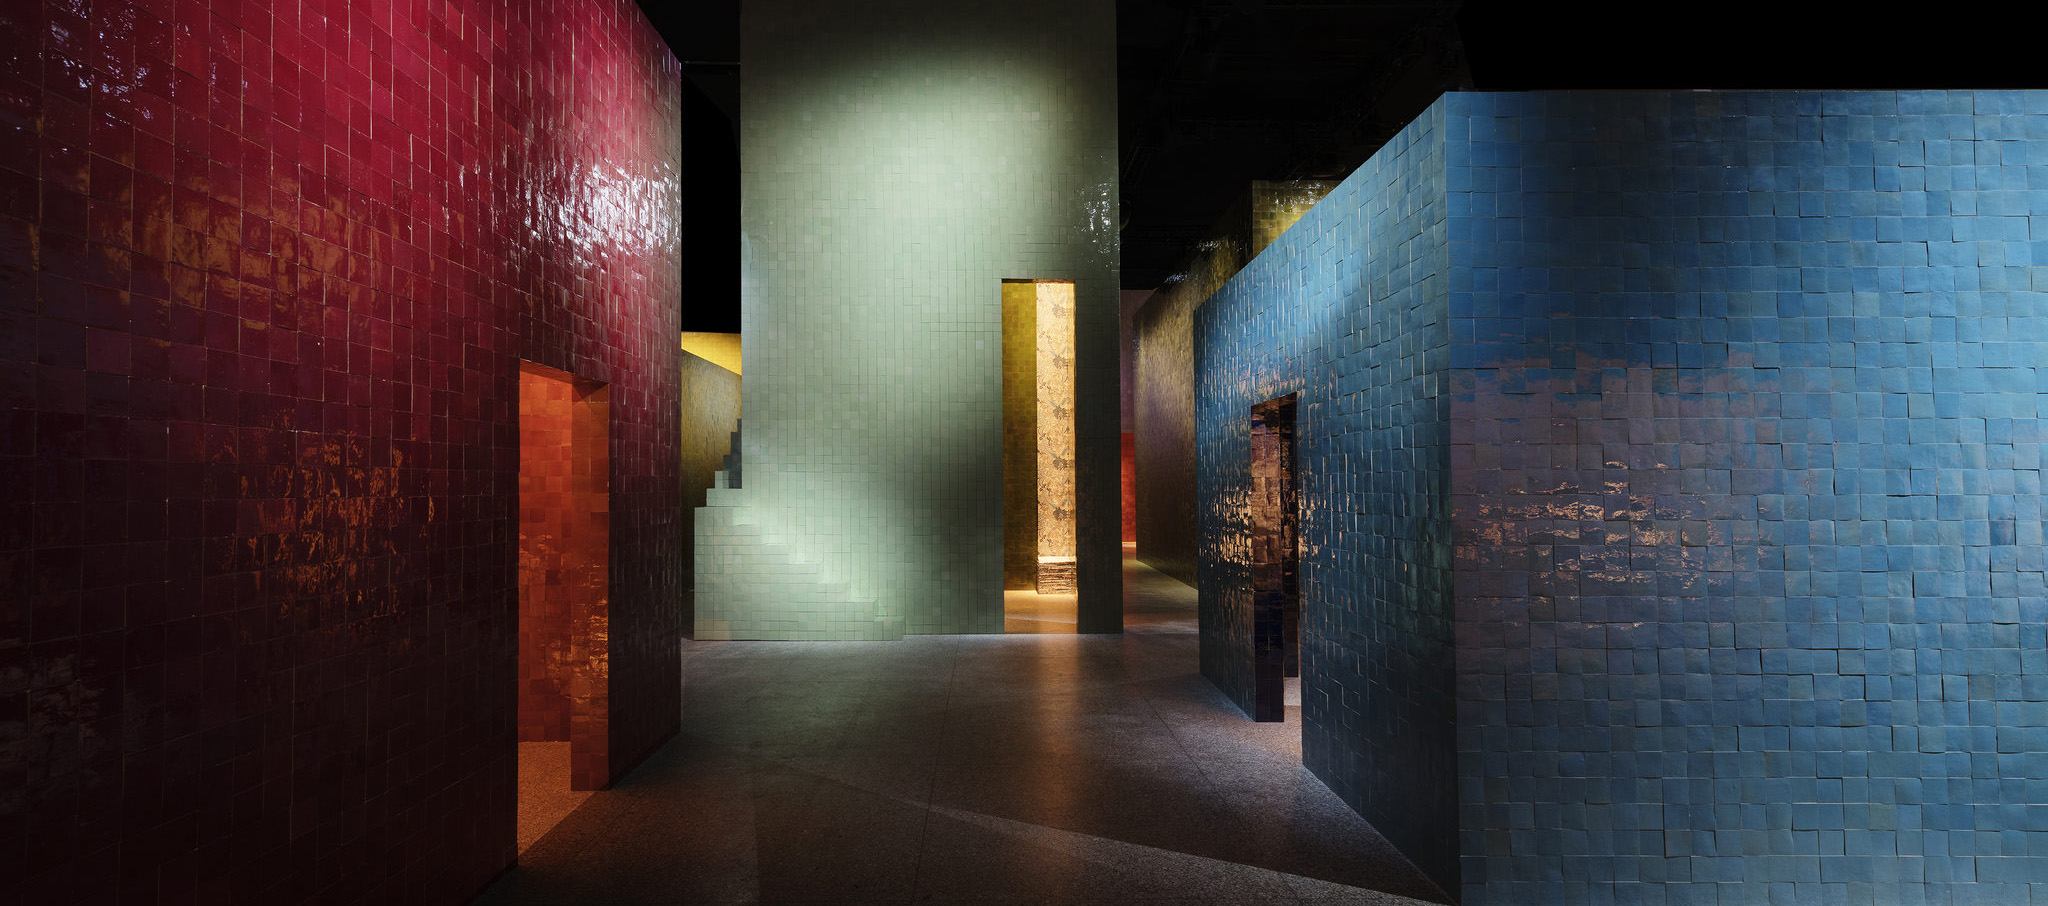 Hermès erected seven towering structures in La Permanente, finished in Moroccan zellige tiles, to house their new pieces